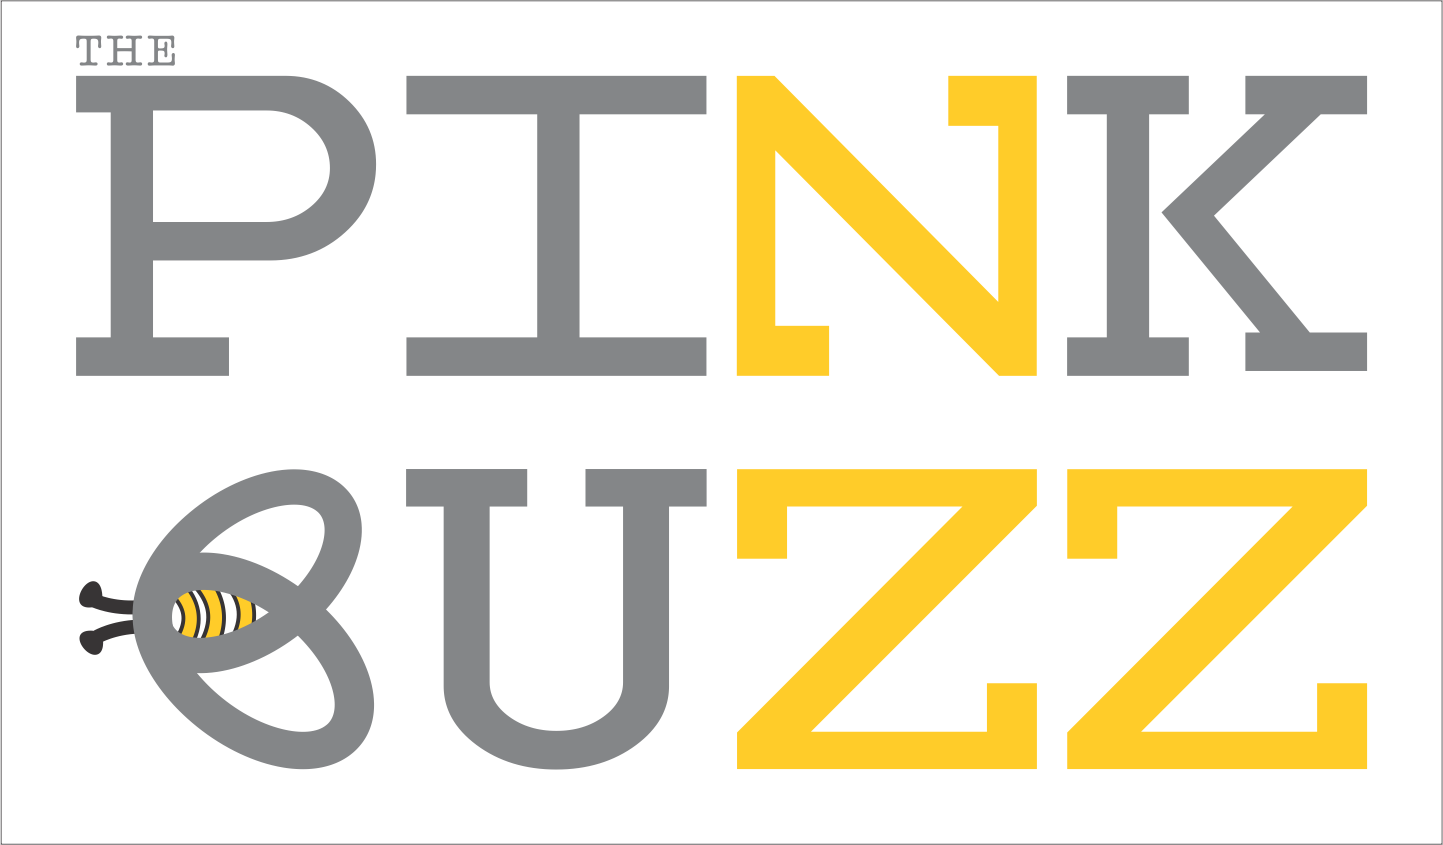 The Pink Buzz